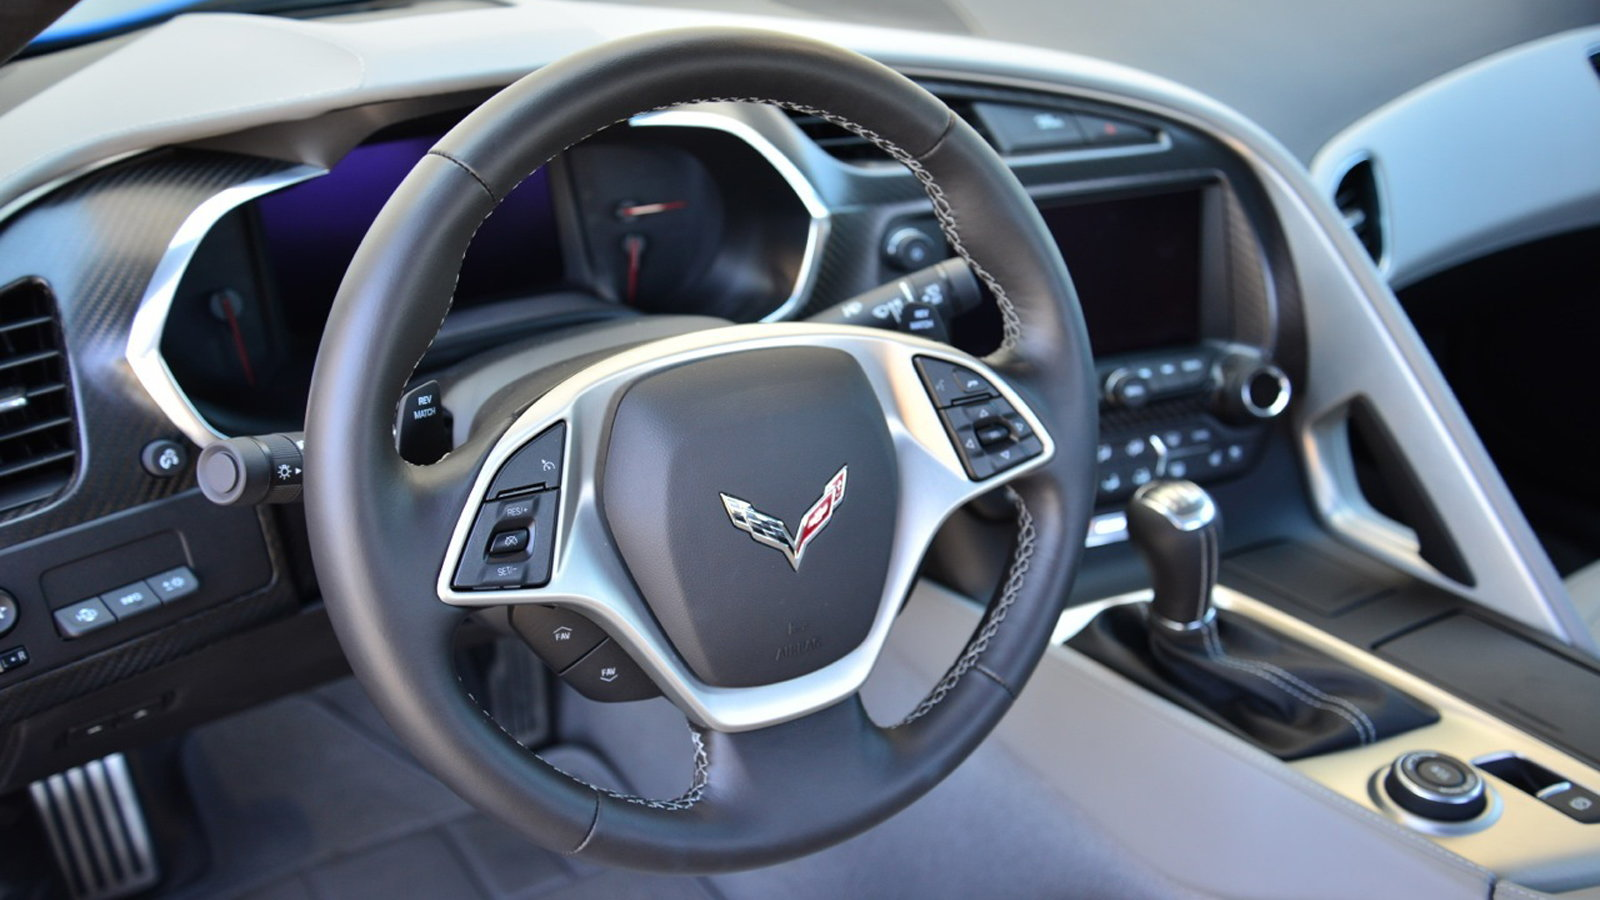 Corvette Diagnostic Test Airbag Recall